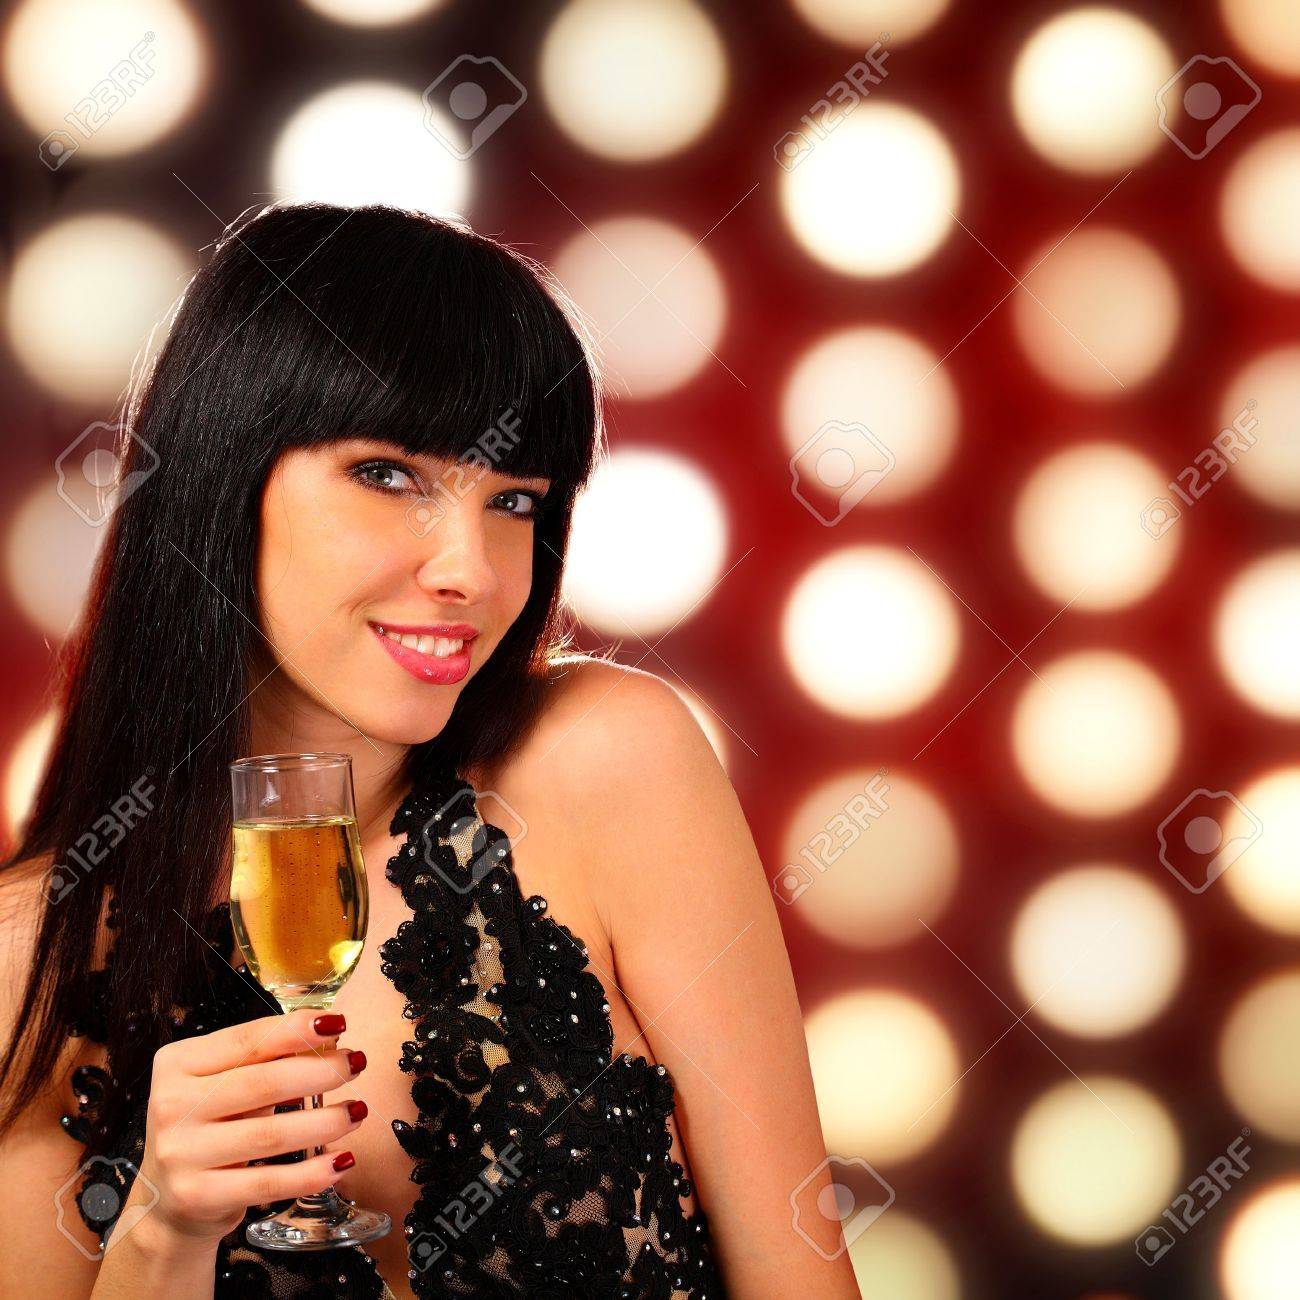 Portrait of a young woman holding a champagne glass Stock Photo - 11468407